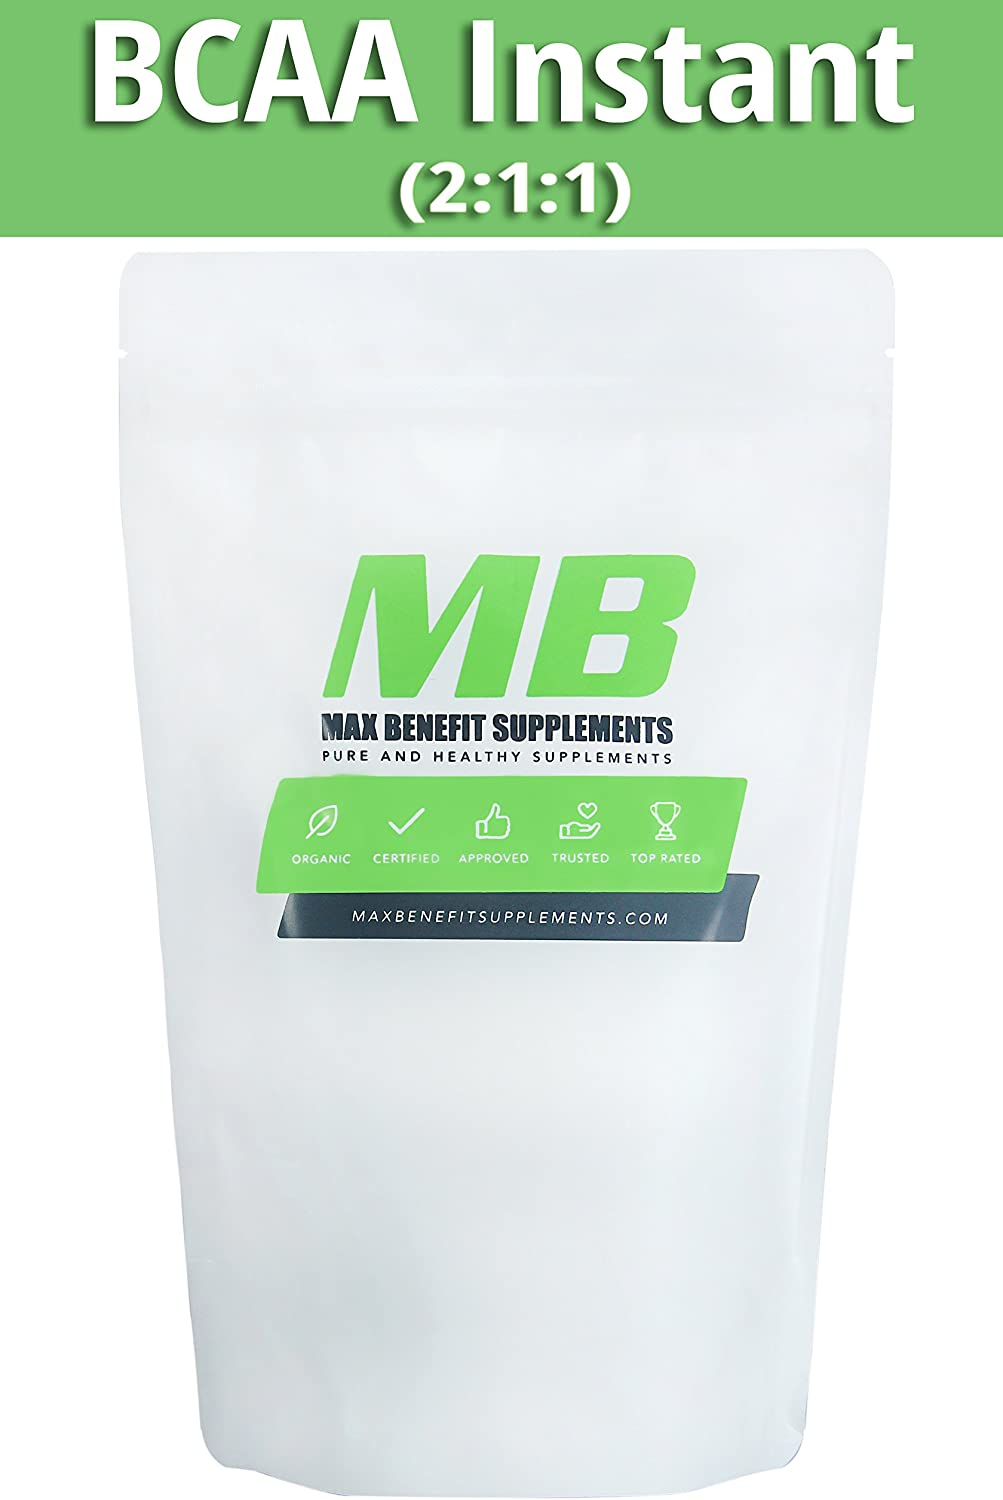 MaxbenefitSupplements 100% Pure BCAA Instant 2:1:1 - Pre/Post Workout Bodybuilding Supplement to Boost Muscle Growth 1000gm - 600 Servings